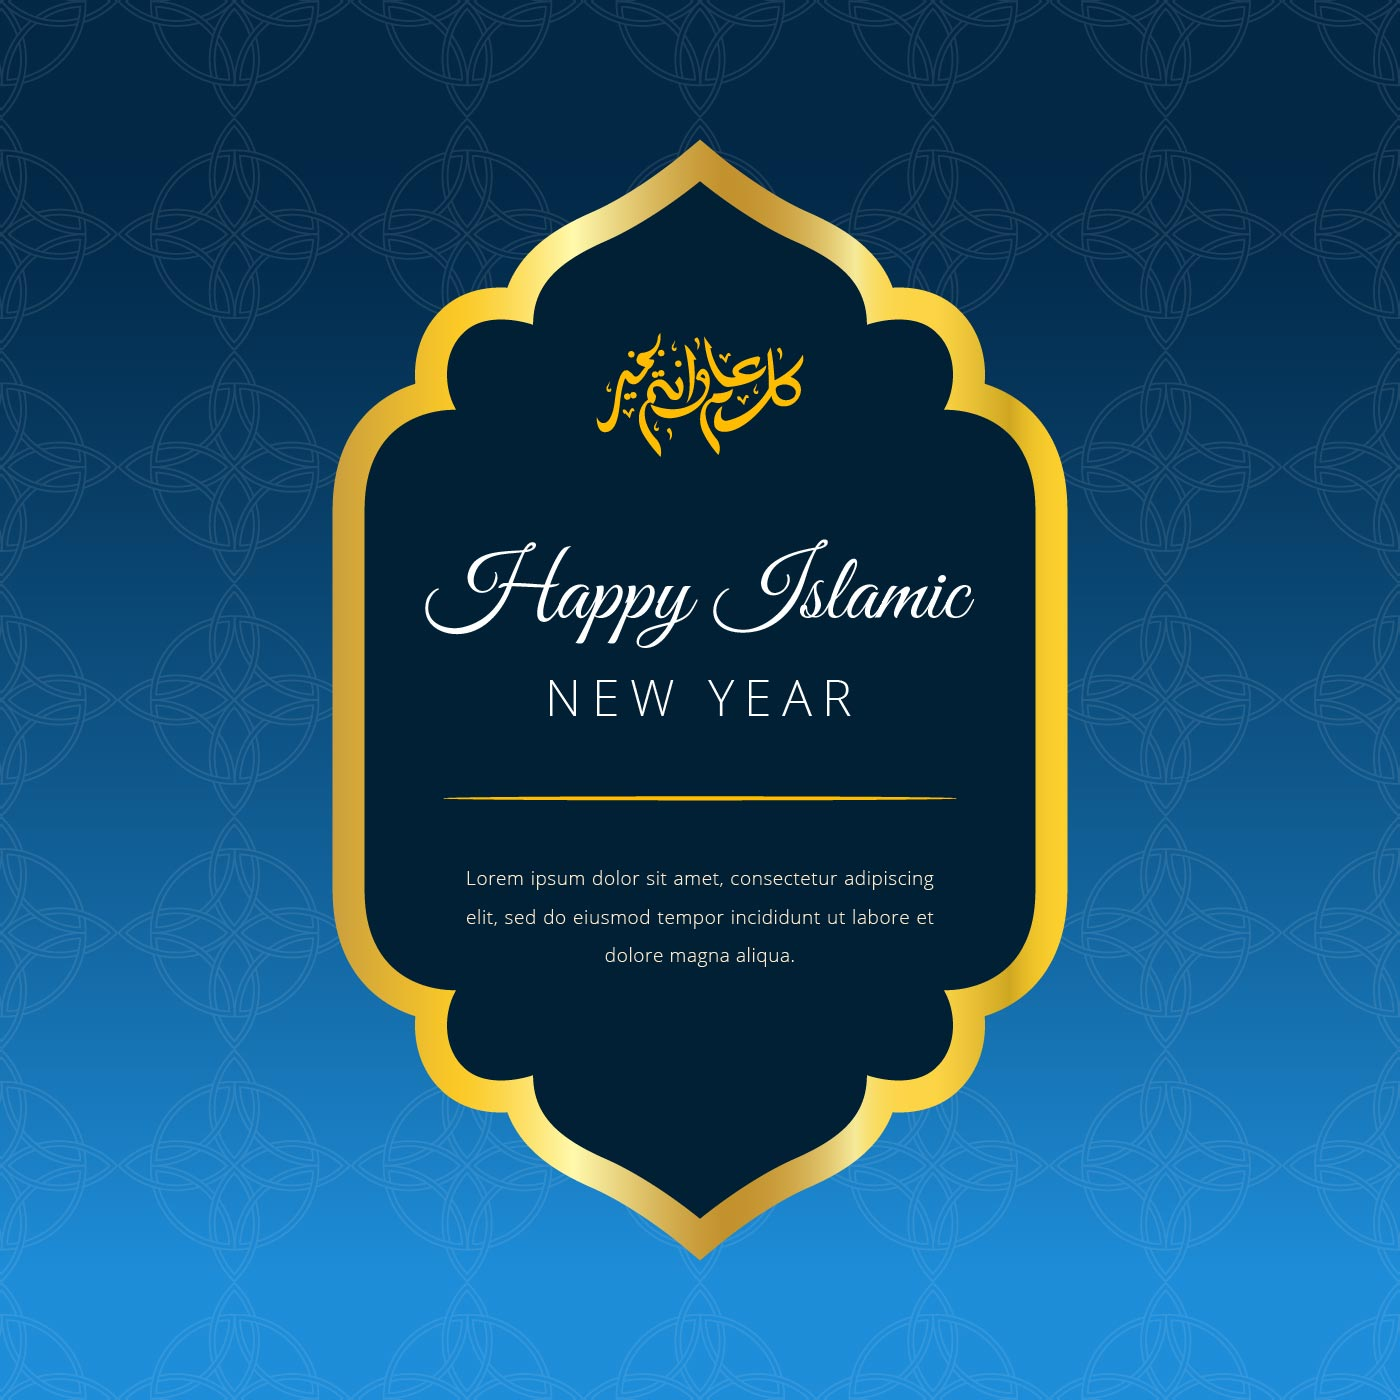 Happy Islamic New Year Vector Background - Download Free ...